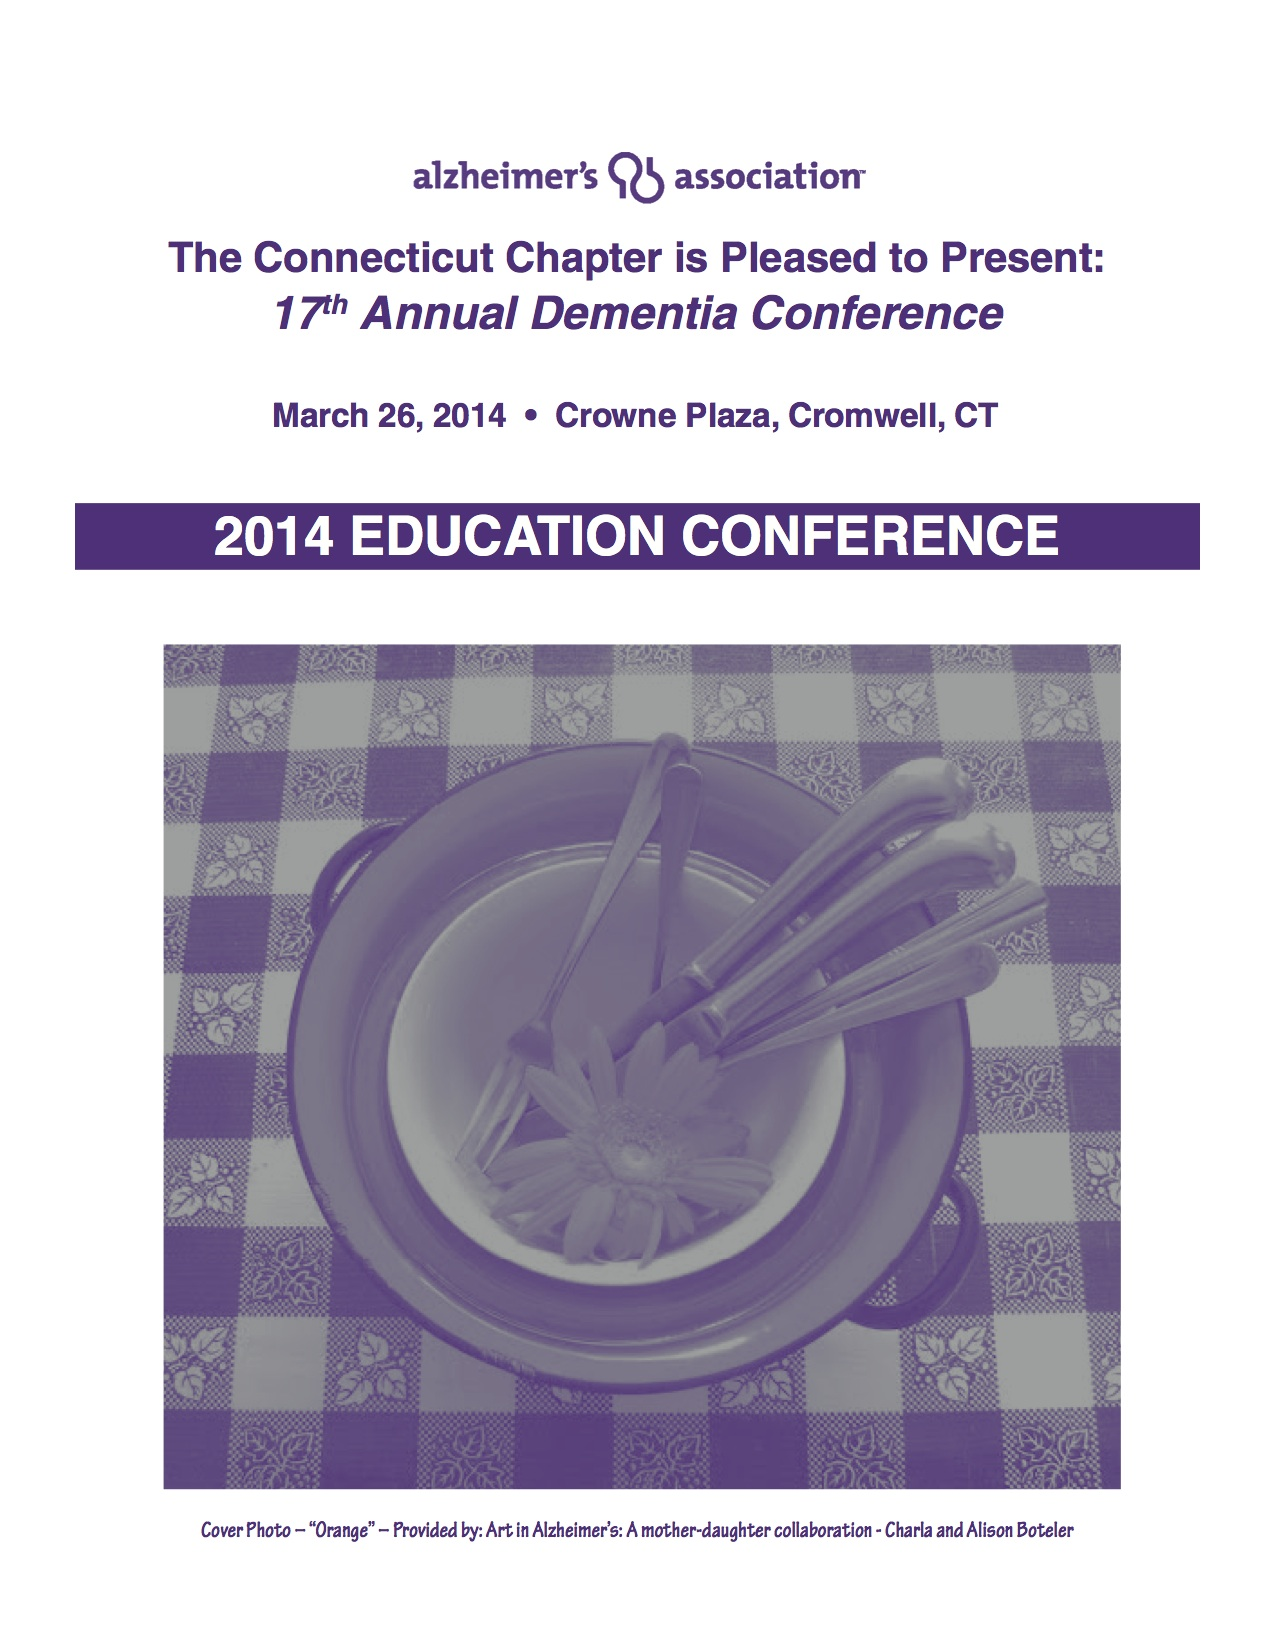 Annual Dementia Conference Cover Feature's Charla's Stackings